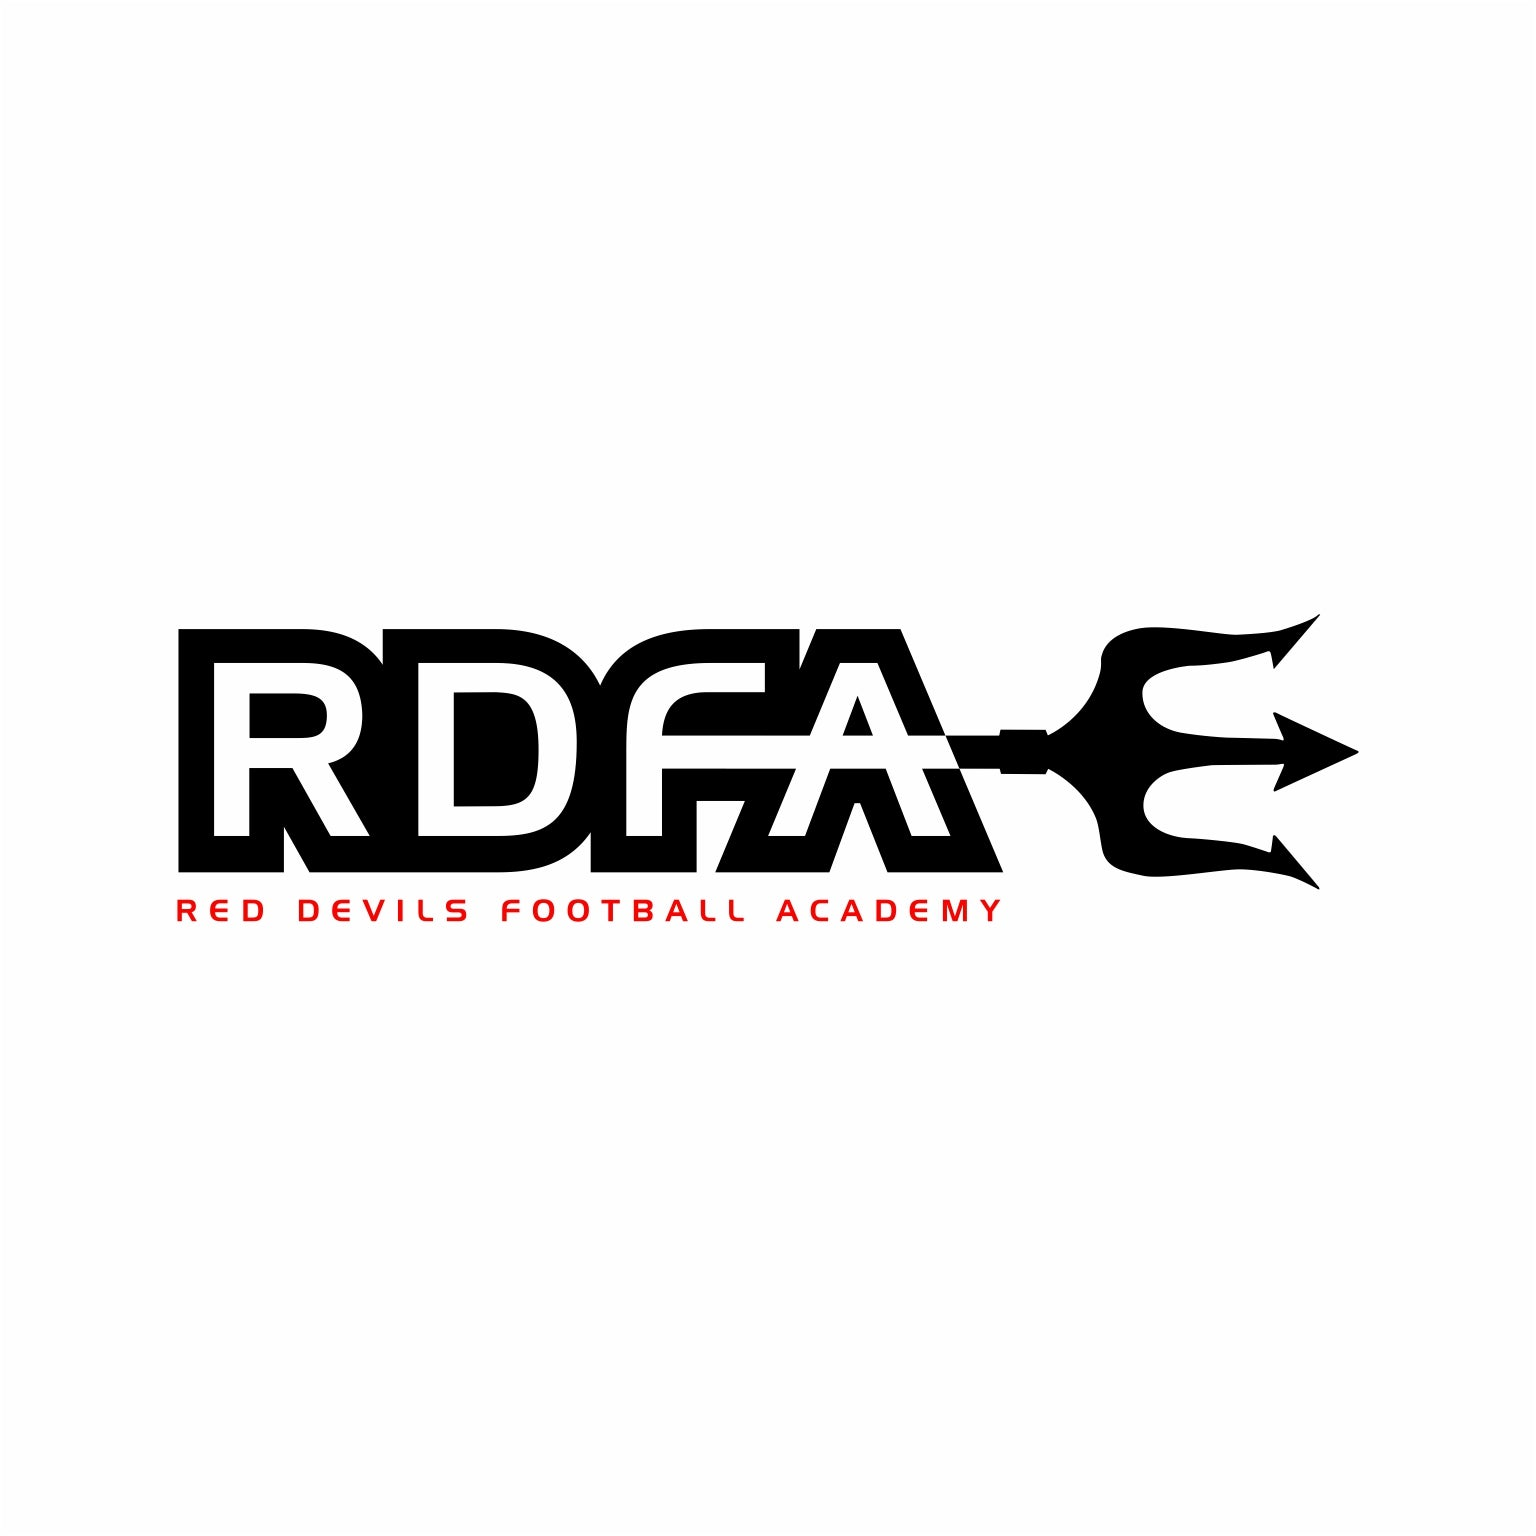 Red Devils Football Academy